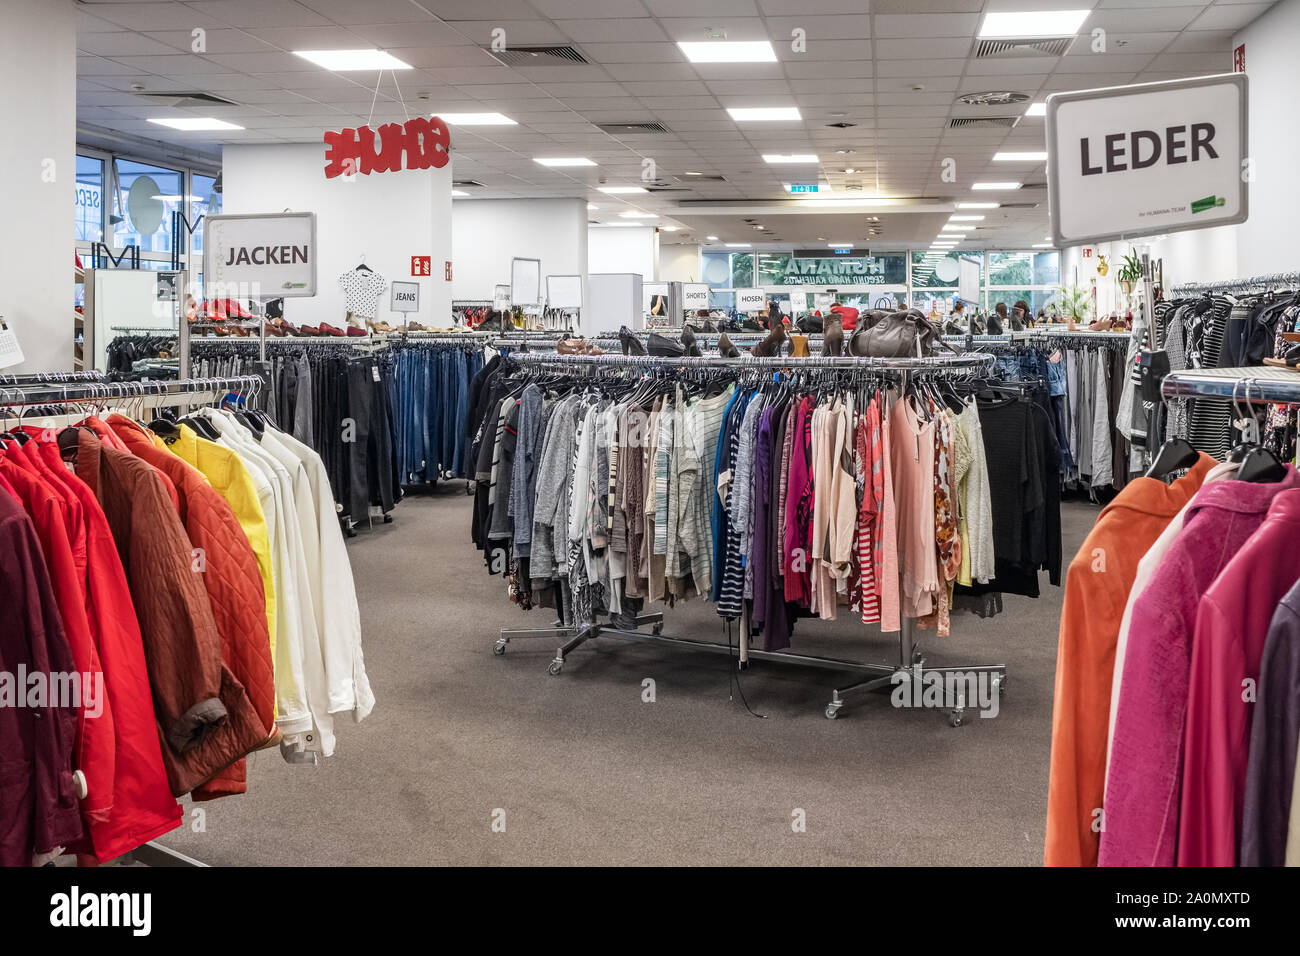 Clothes Wholesale High Resolution Stock Photography And Images Alamy